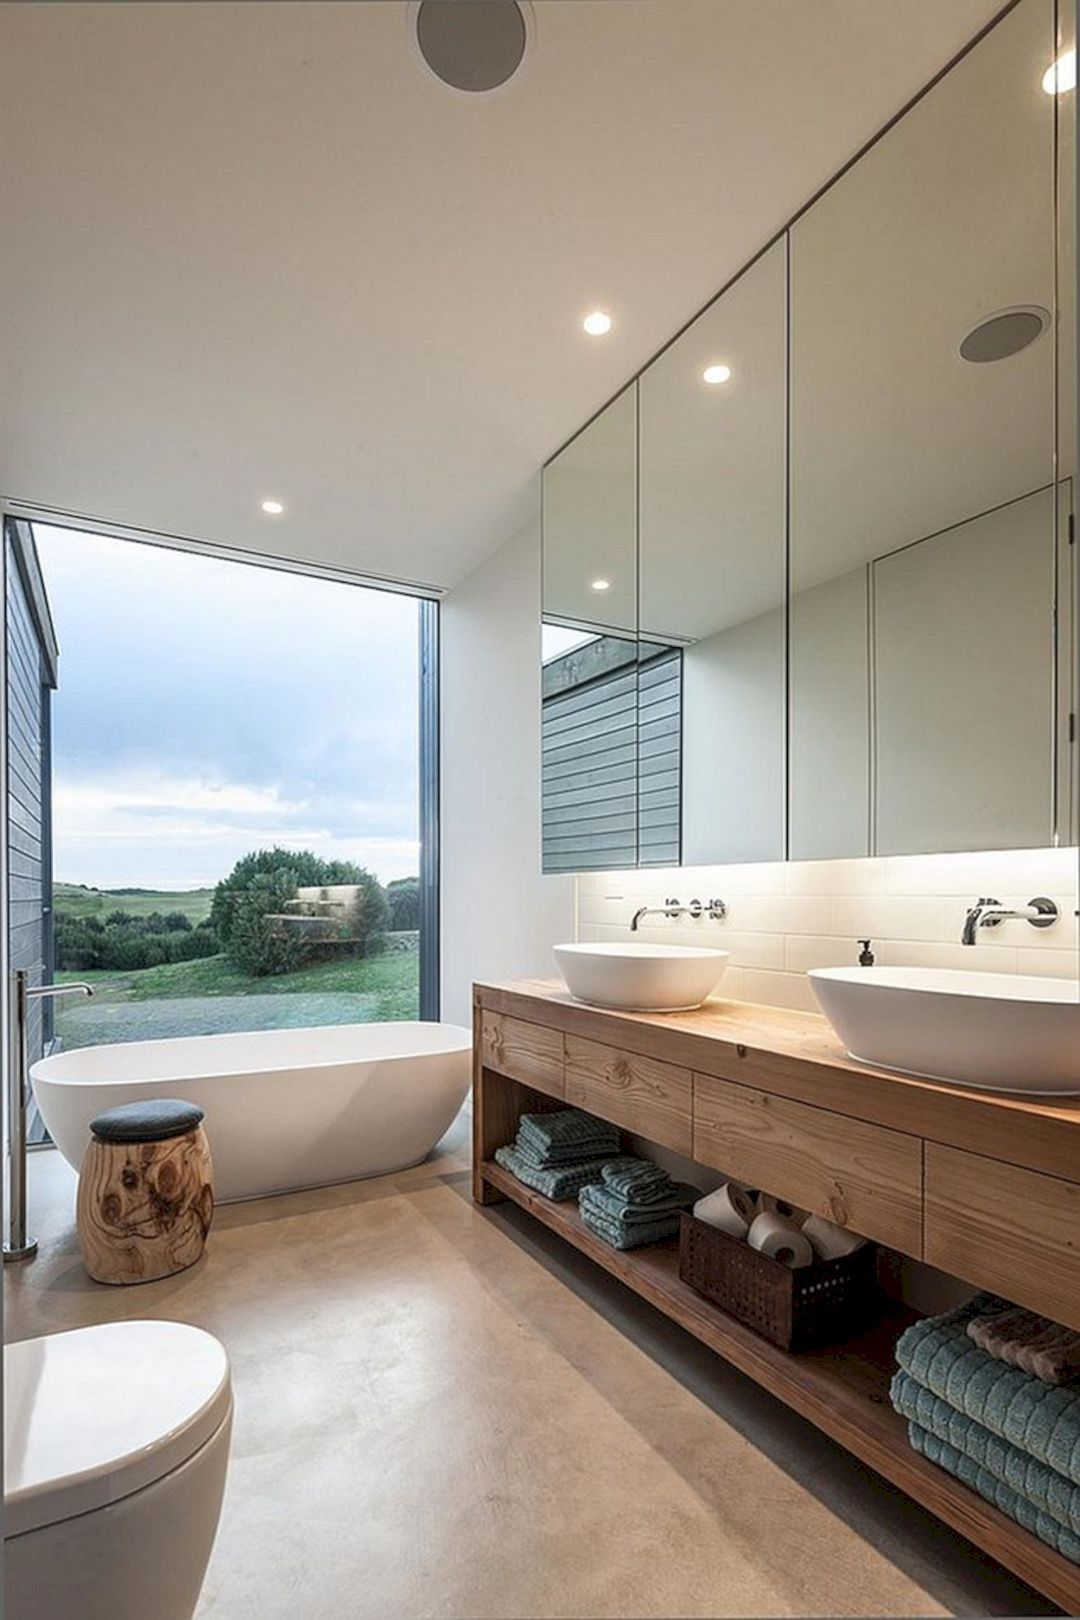 Stylish Modern Bathroom: 128 Best Designs Roundup | Bathroom designs on bedrooms with wood, white bathroom with wood, bathroom decorating with wood, lighting with wood, glass tiles with wood, small bathrooms tile, kitchen cabinets with wood, bathroom tiles with wood,